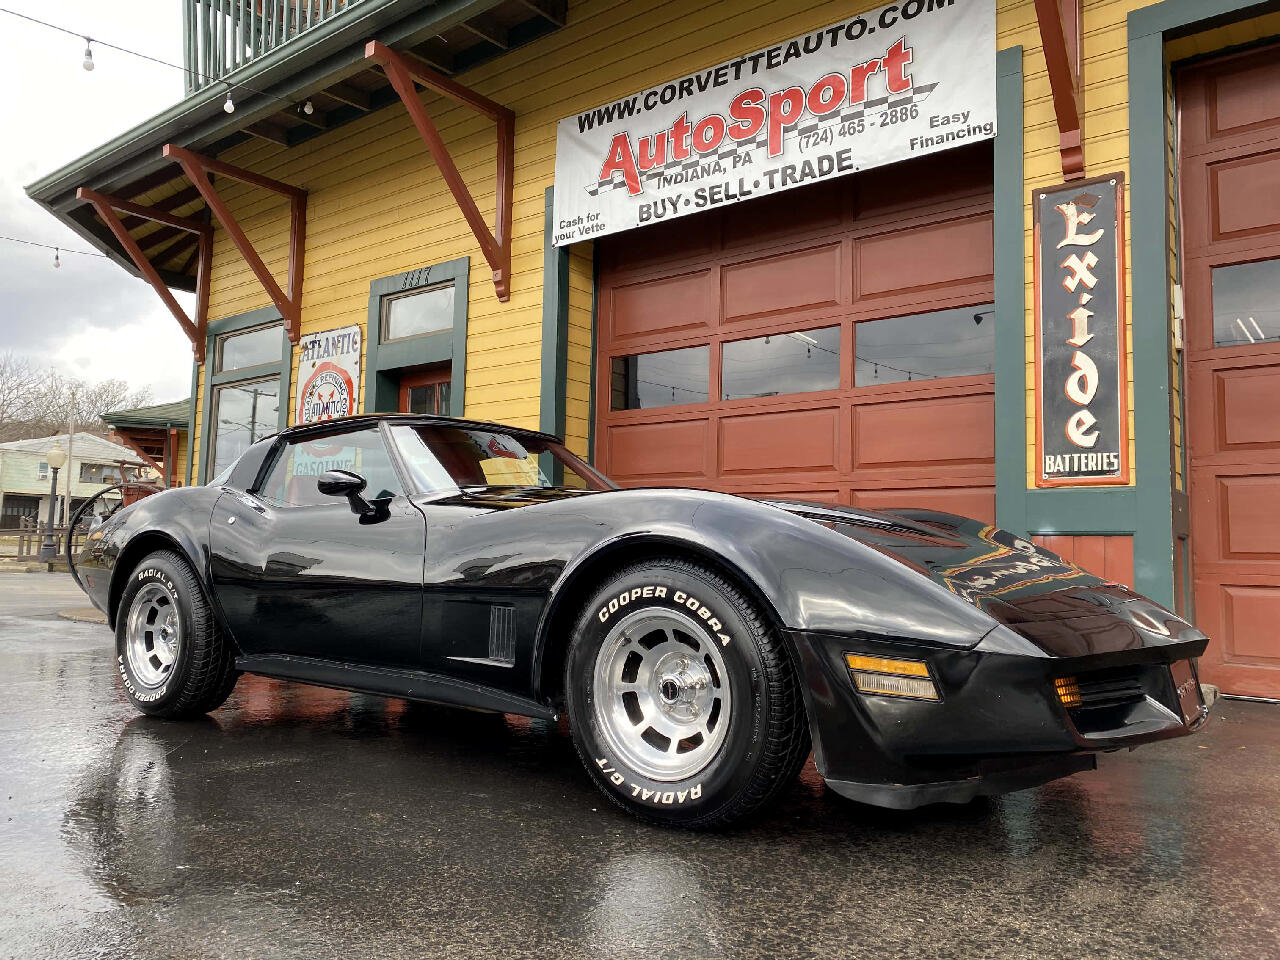 1981 Chevrolet Corvette 1981 Rare Black/Red 15k Org Miles! All Org Corvett